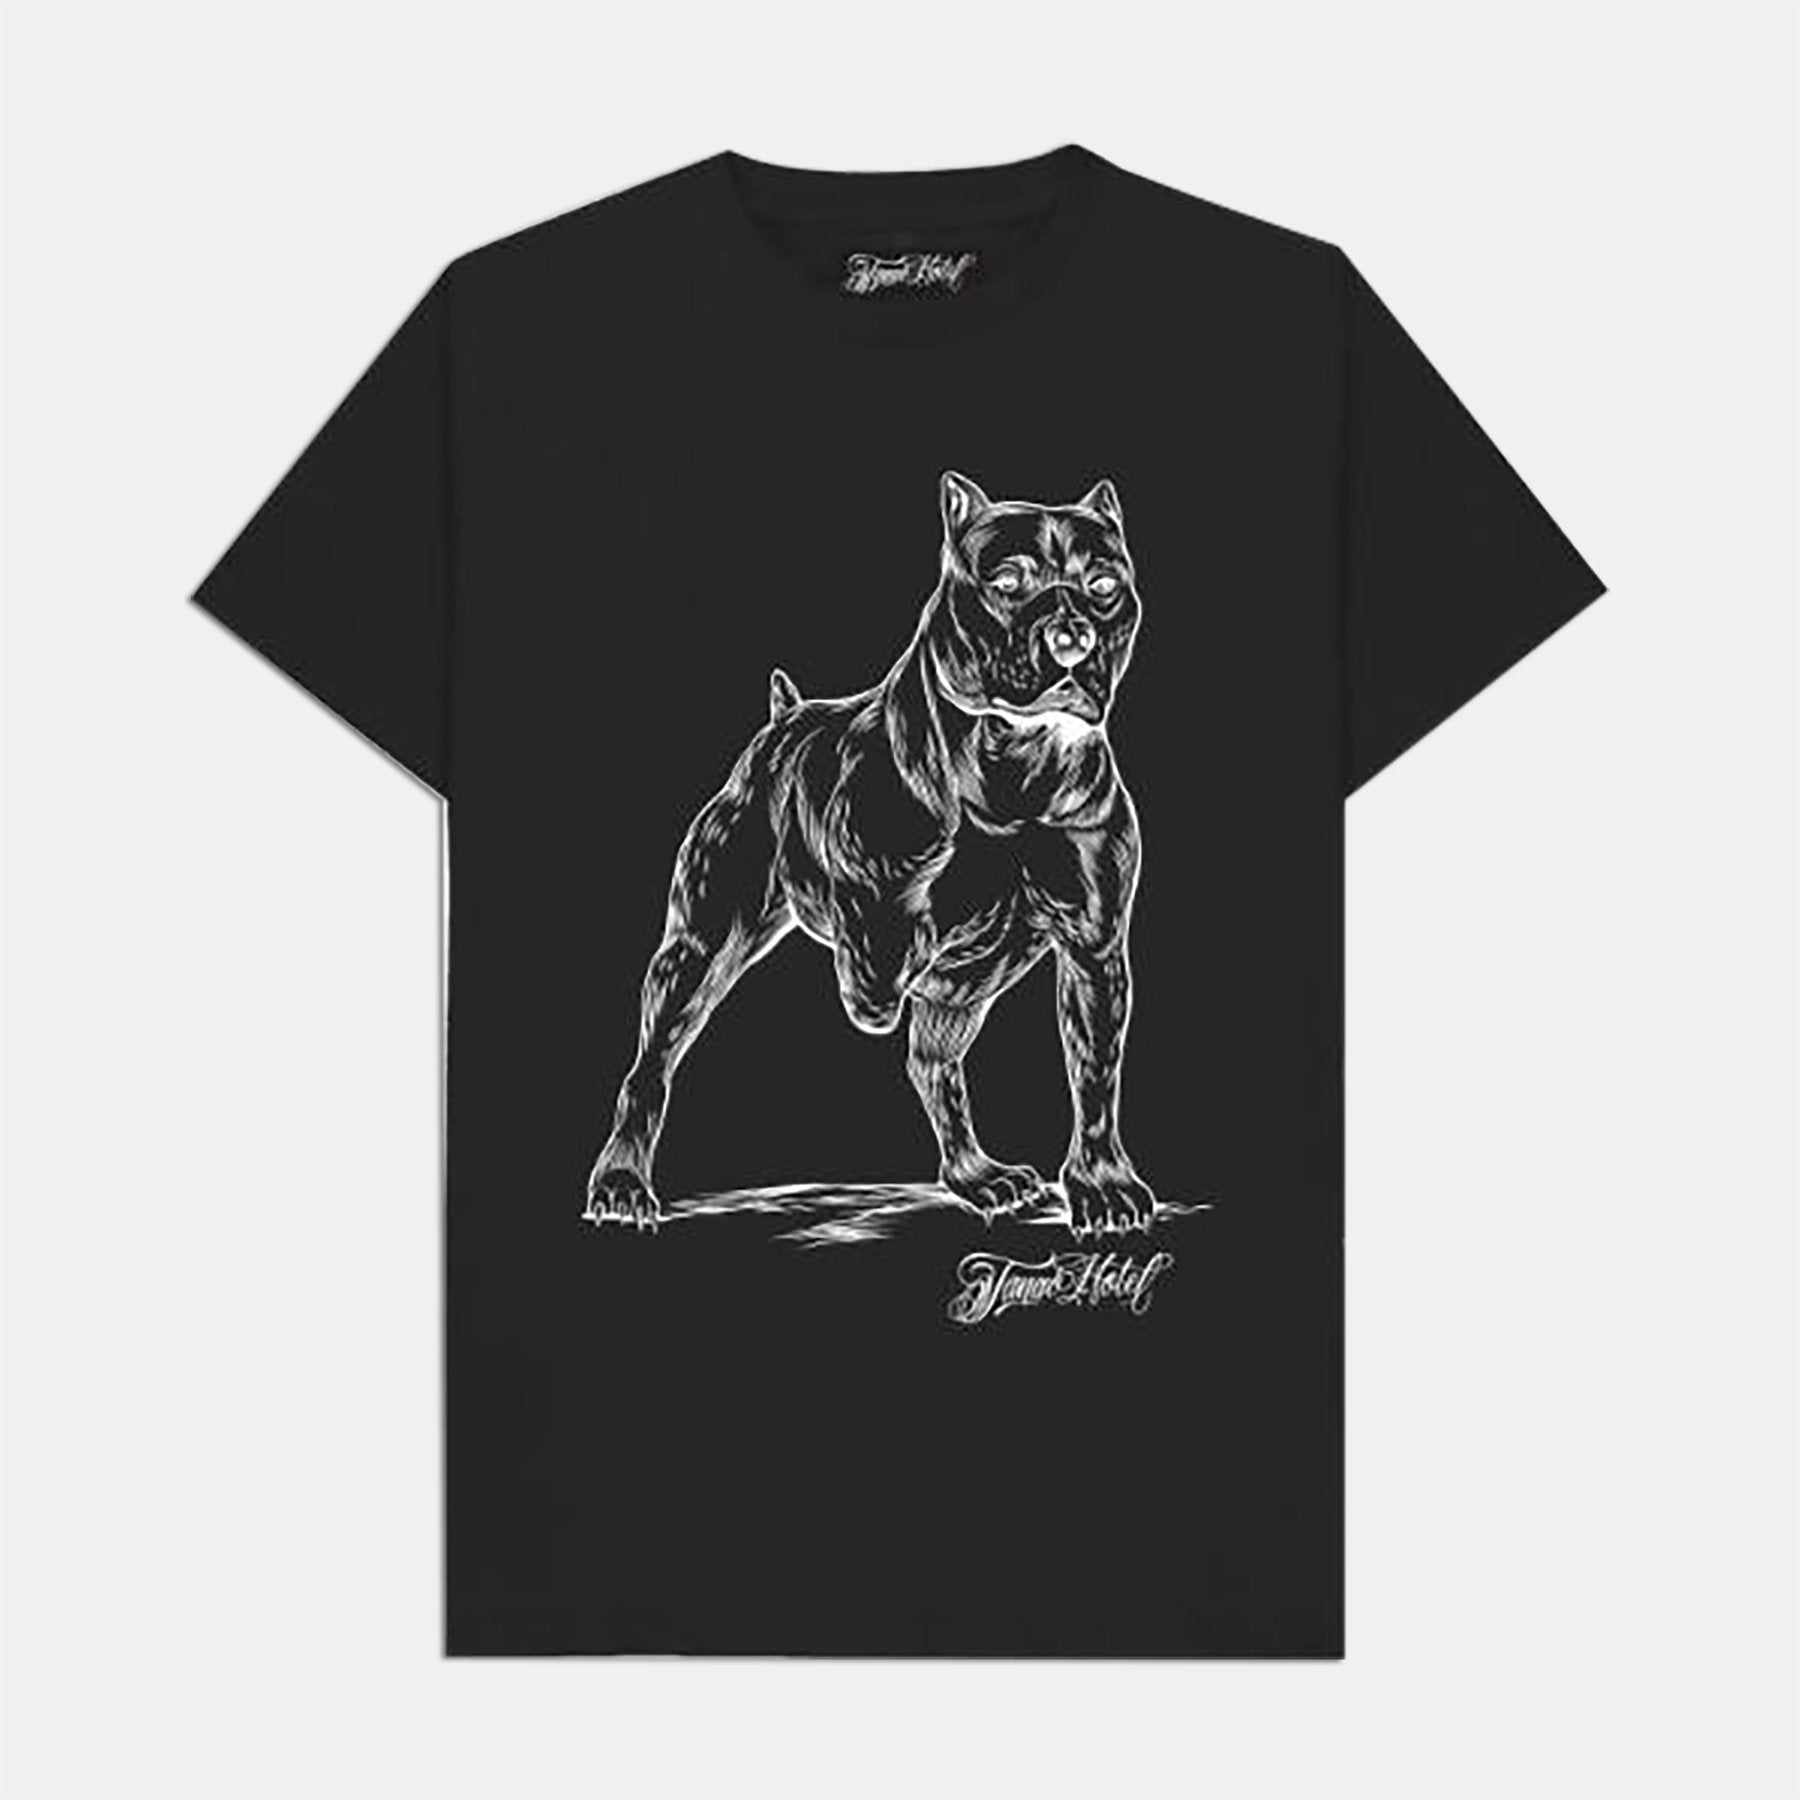 Tango Hotel - Mister Cartoon Scrappy Tee - Black